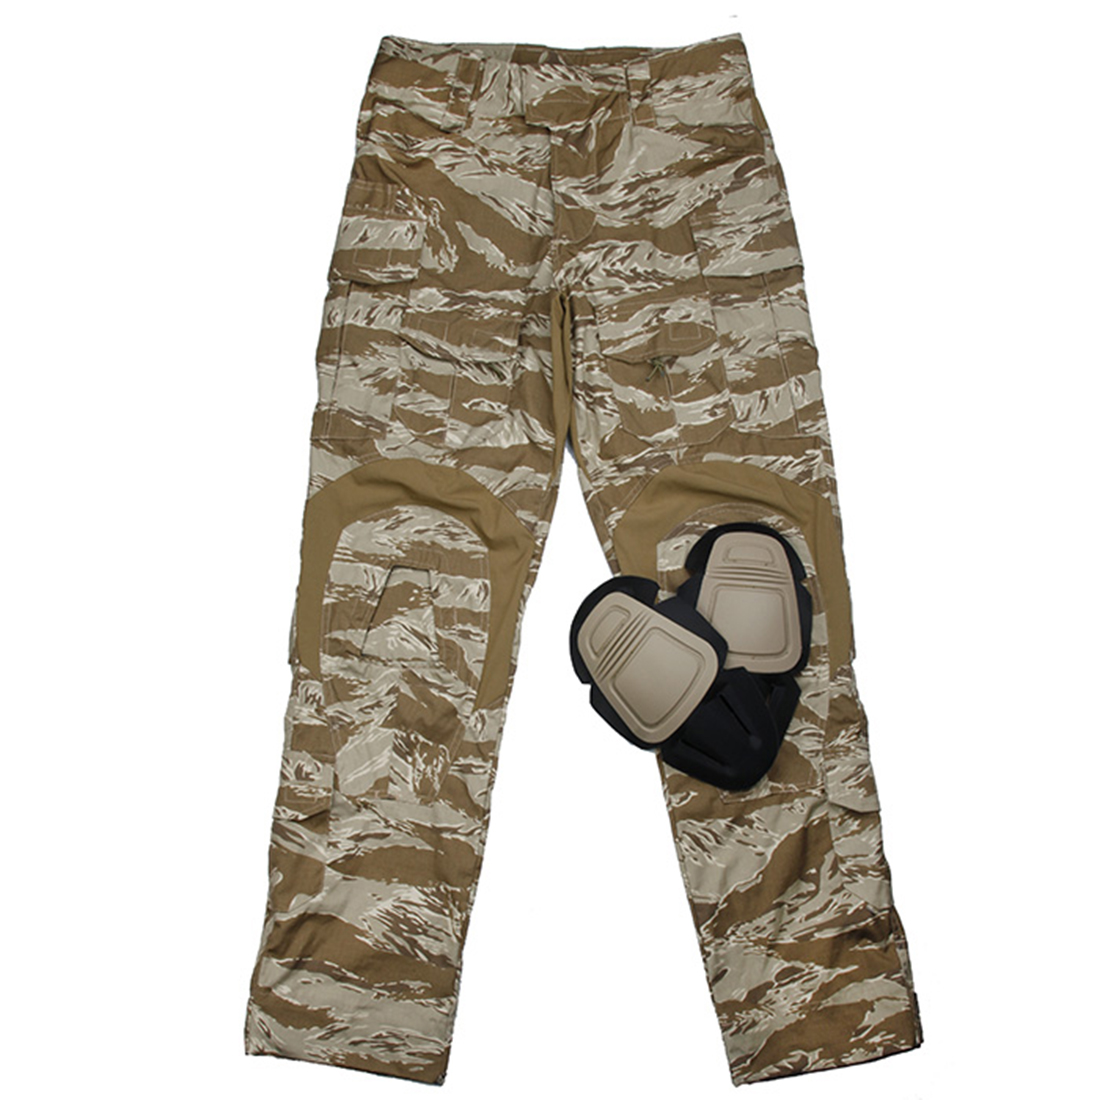 TMC <font><b>G3</b></font> <font><b>Combat</b></font> <font><b>Pants</b></font> Tactical Training <font><b>Pants</b></font> With Kneepads For Tactical Airsoft Outdoor Hunting Game - Tigerstripe Camouflage image